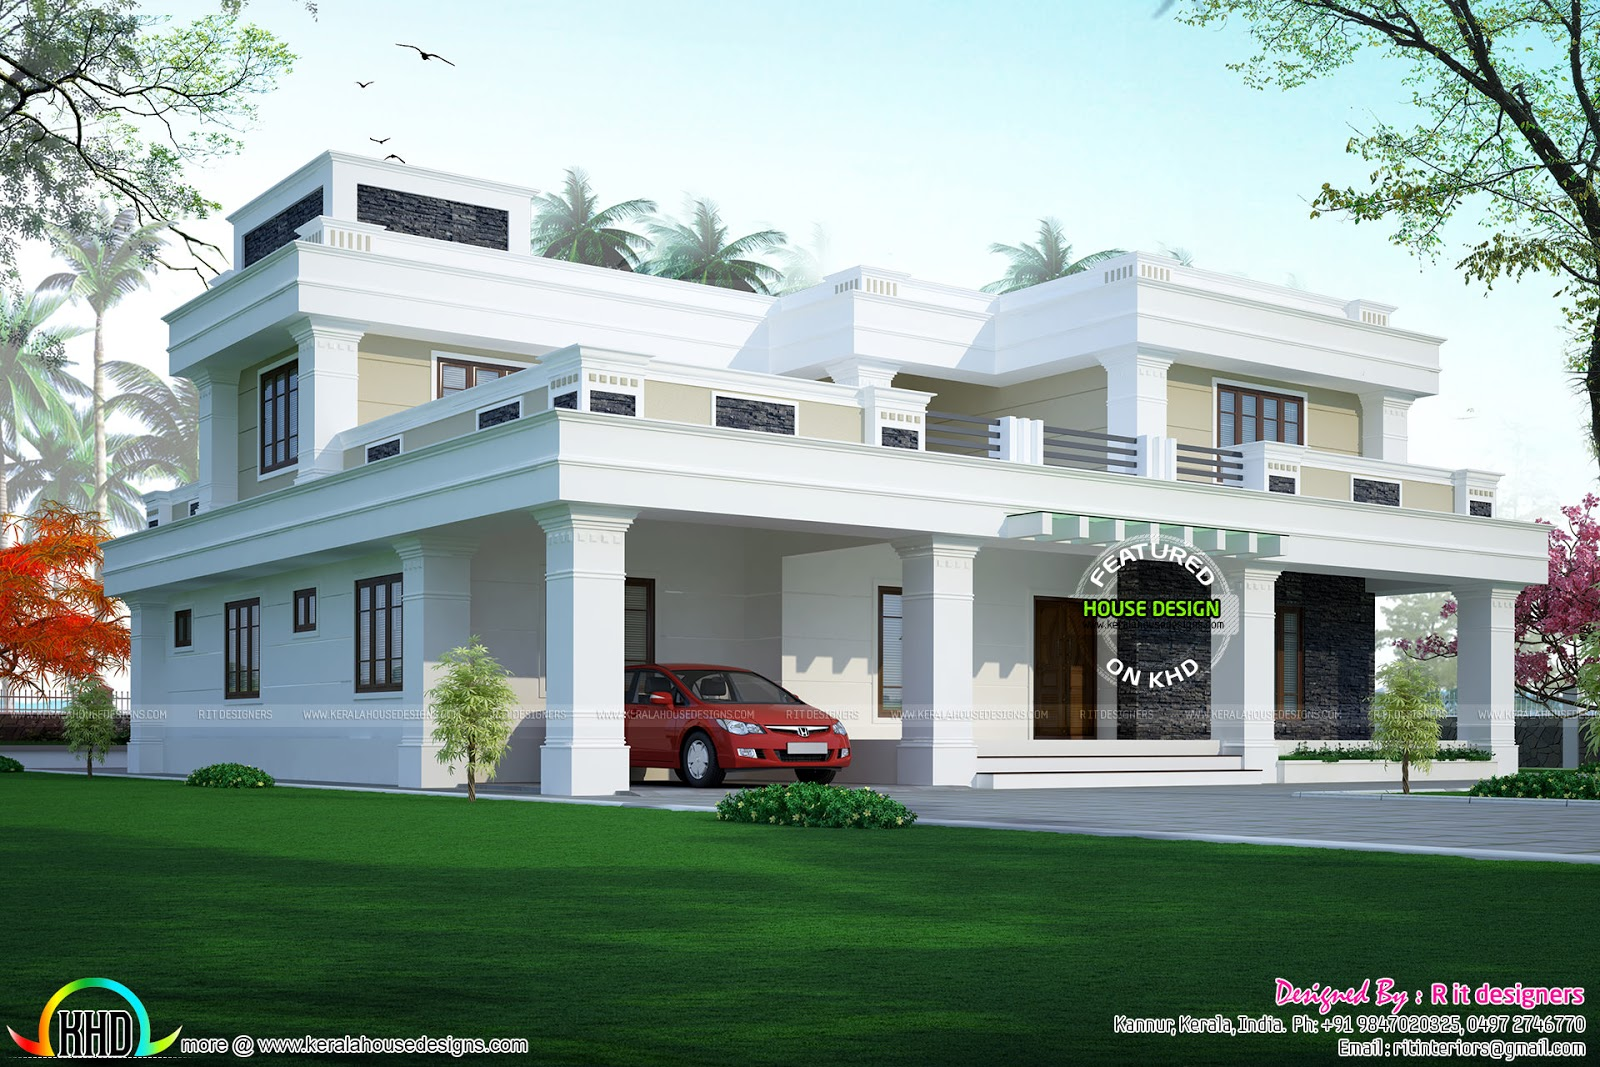 311 Sq M Flat Roof Home Design Home Design Simple